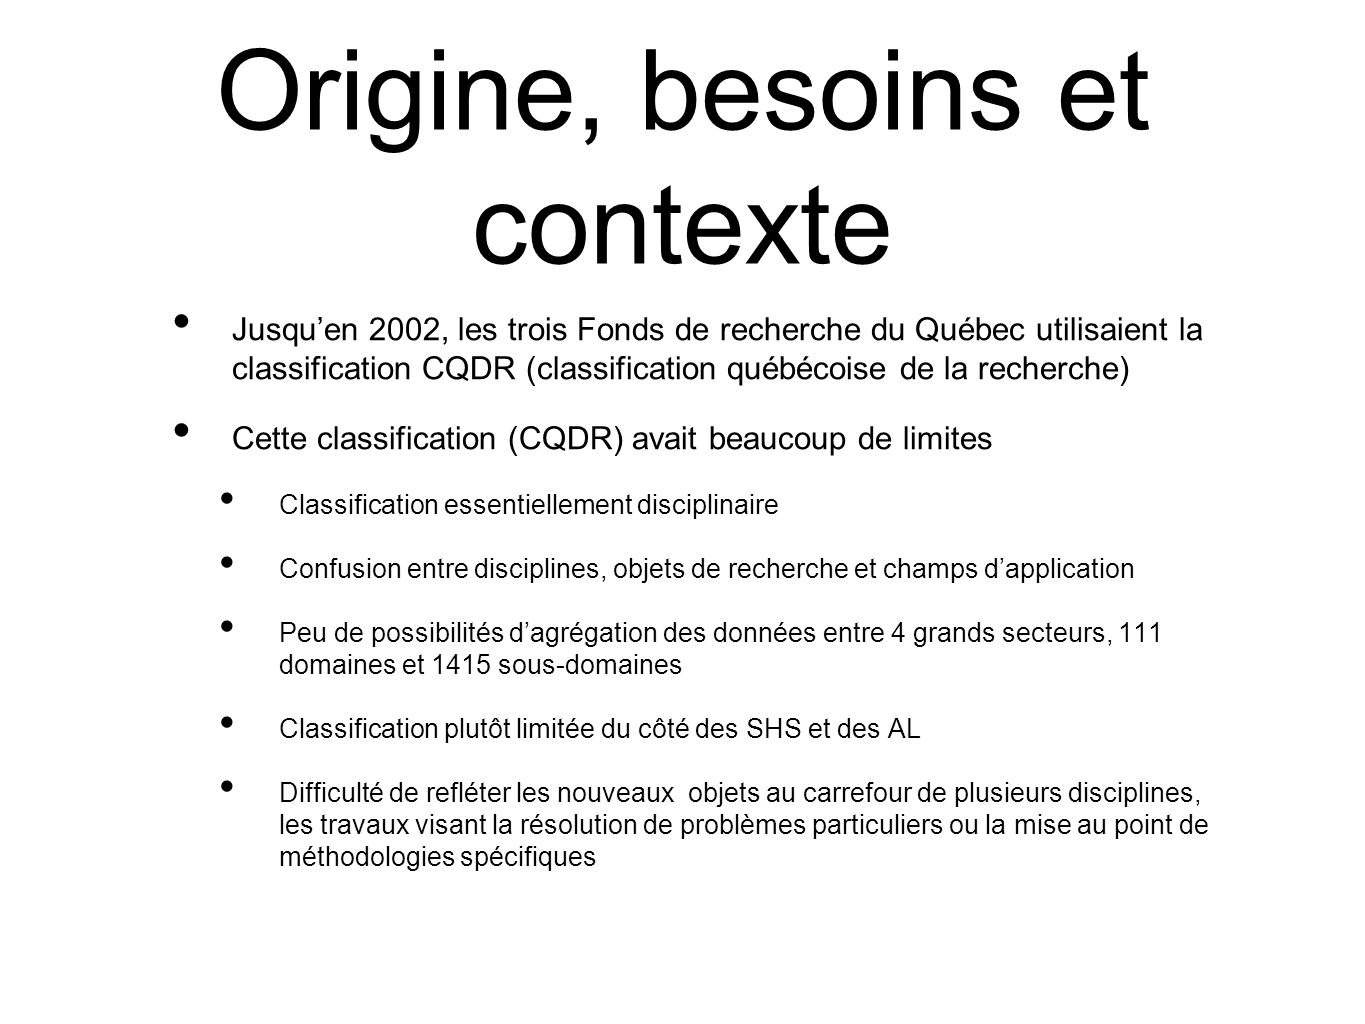 Origin, needs and context Until 2002, the three Quebec research funds used the classification CQDR (classification québécoise de la recherche) This classification (CQDR) had many limits Essentially disciplinary classification Confusion between disciplines, research objects and fields of application Few possibilities for aggregation of data among 4 major sectors, 111 domains and 1415 subdomains Classification rather limited in terms of HSS and AL Difficulty of reflecting the new objects at the crossroads of several disciplines, work intended to solve special problems or perfecting of specific methodologies